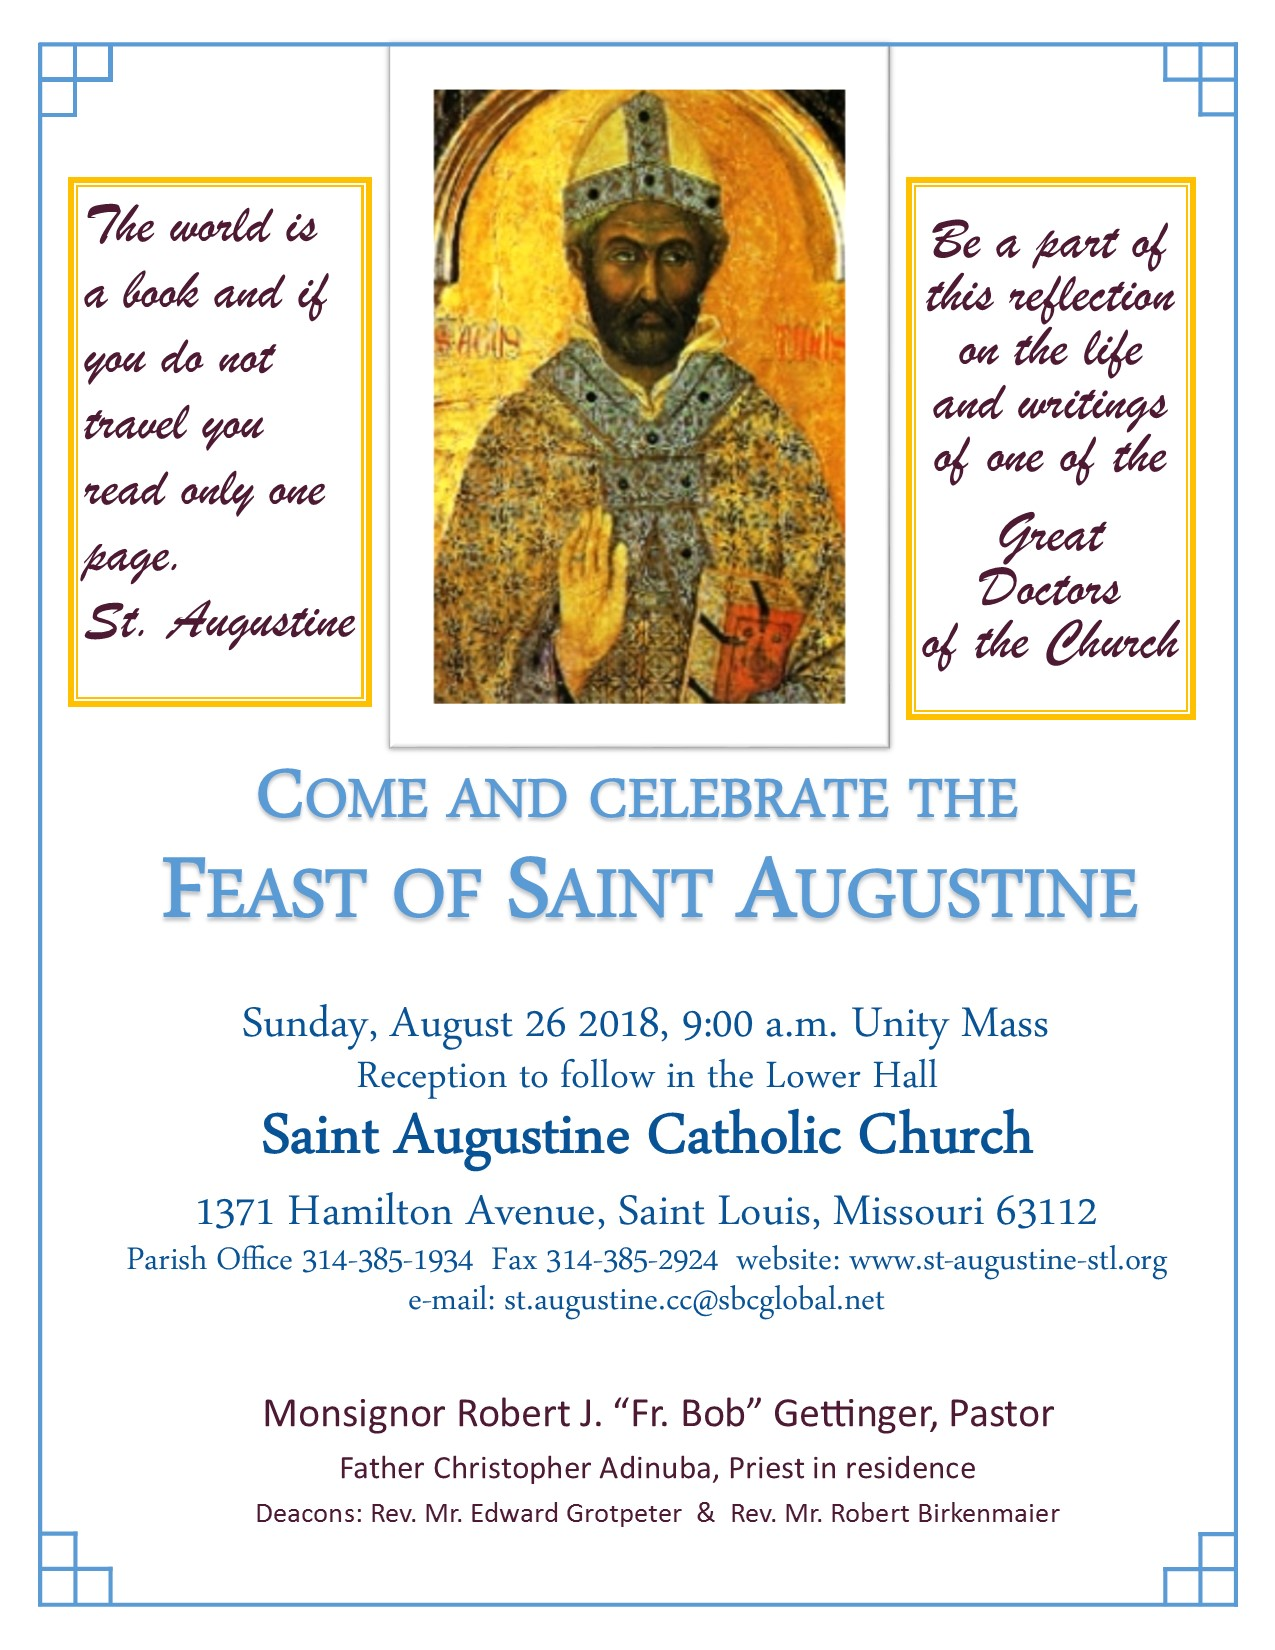 feast of saint augustine archdiocese of st louis